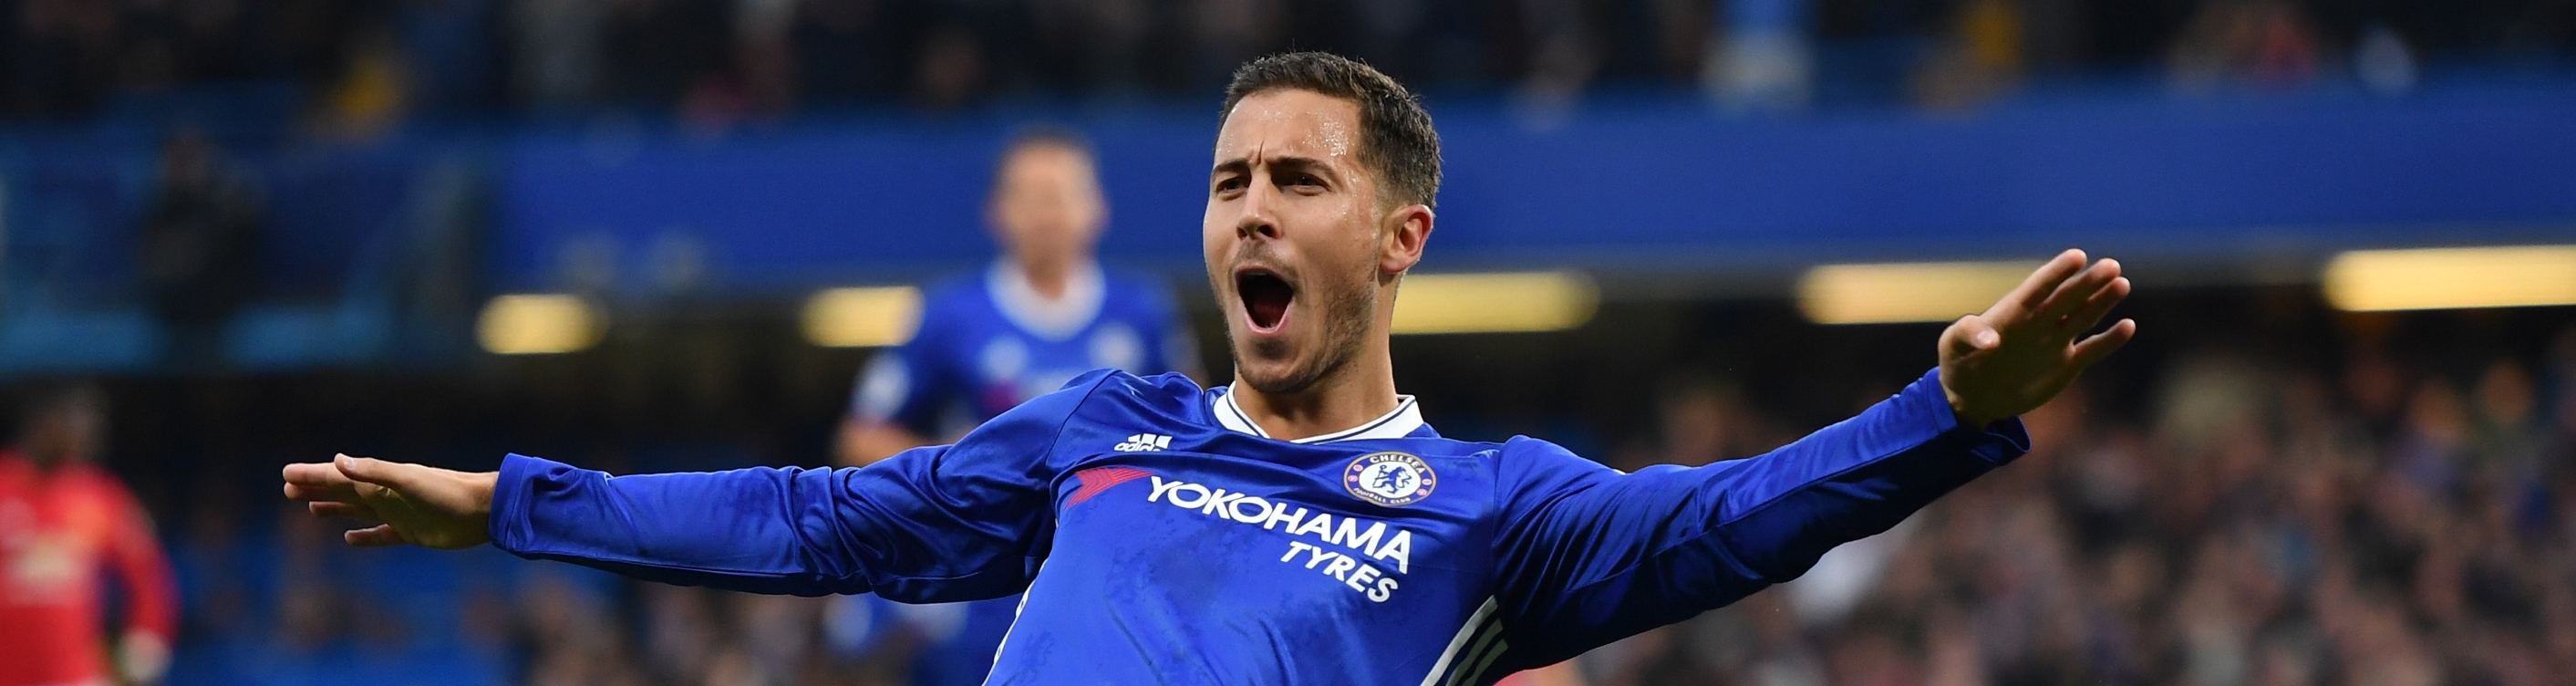 Hazard for betting piece DO NOT USE IN ARTICLES